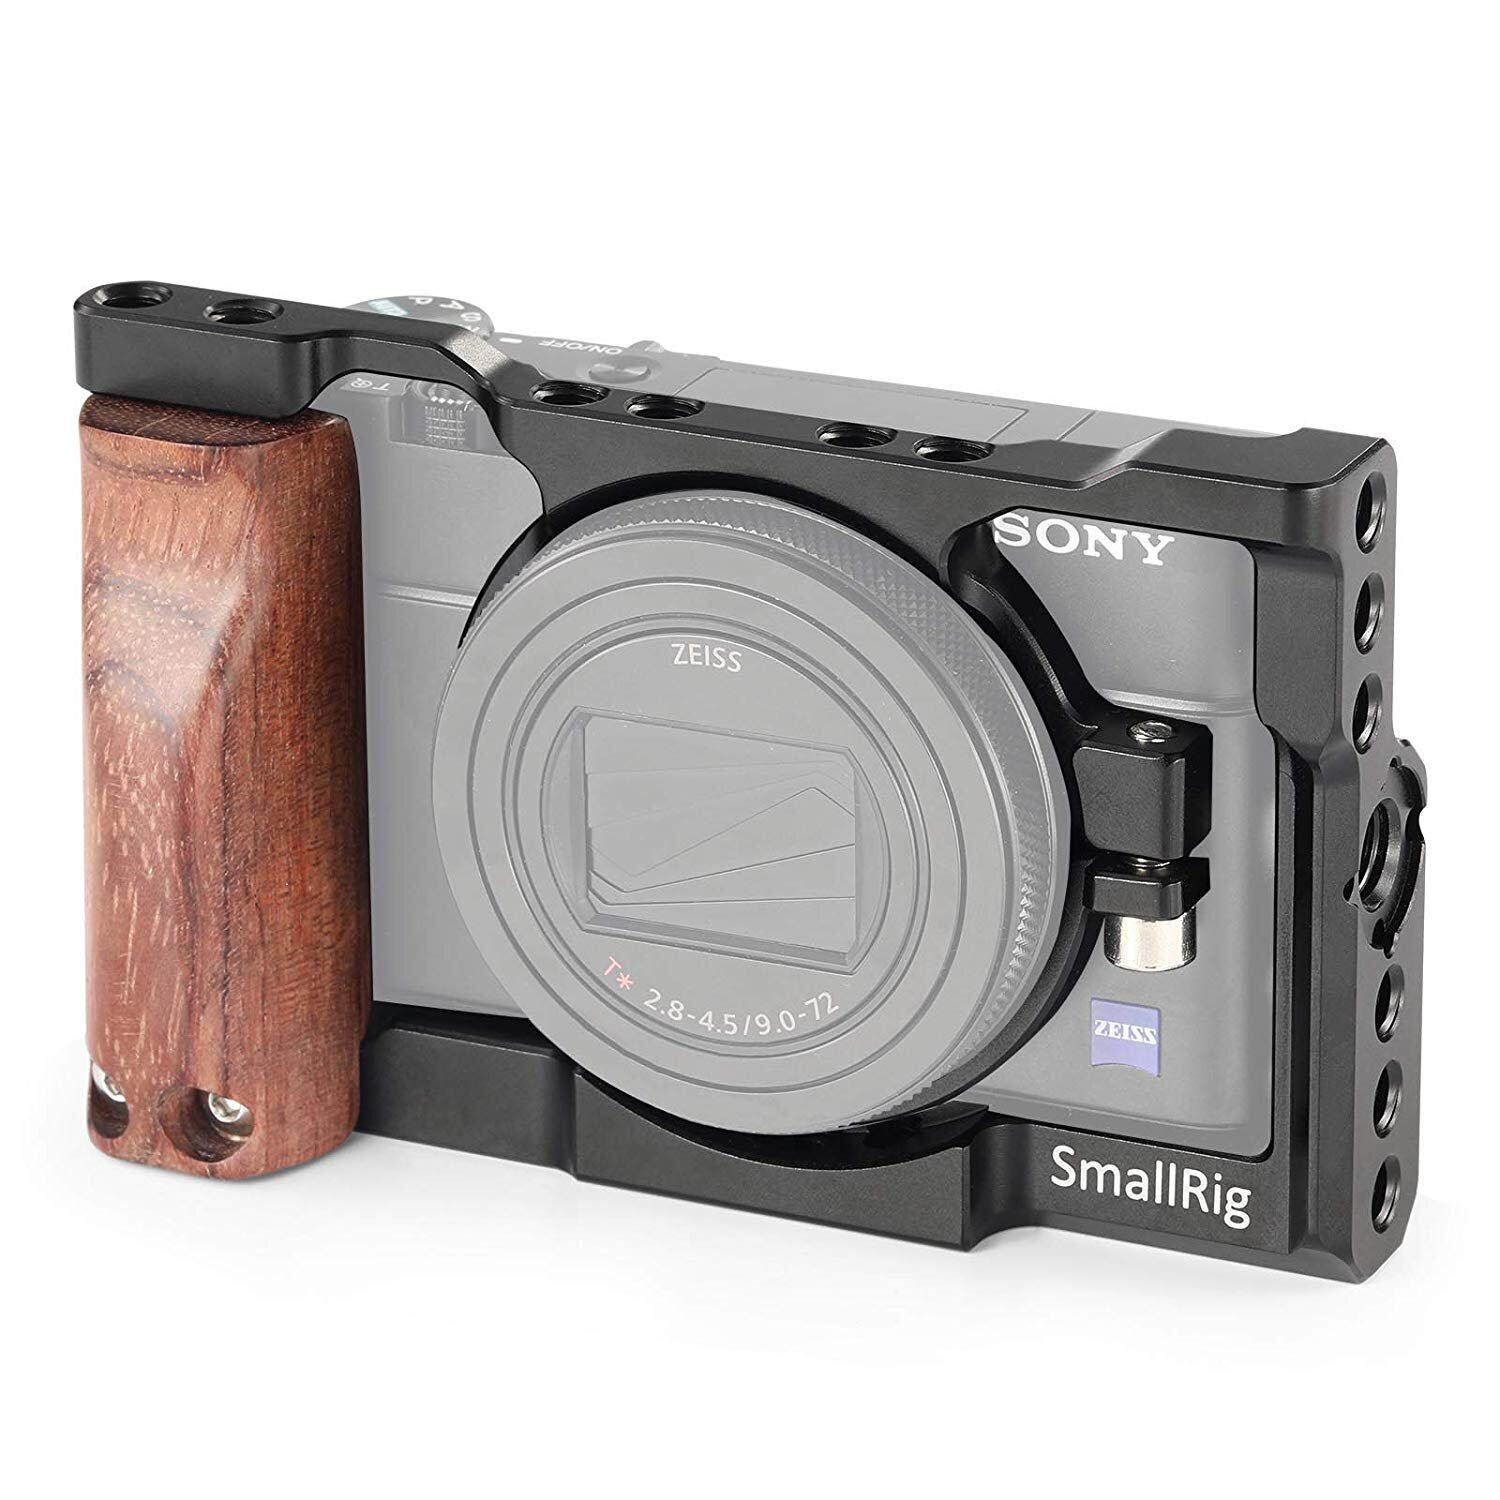 SMALLRIG Cage for Sony